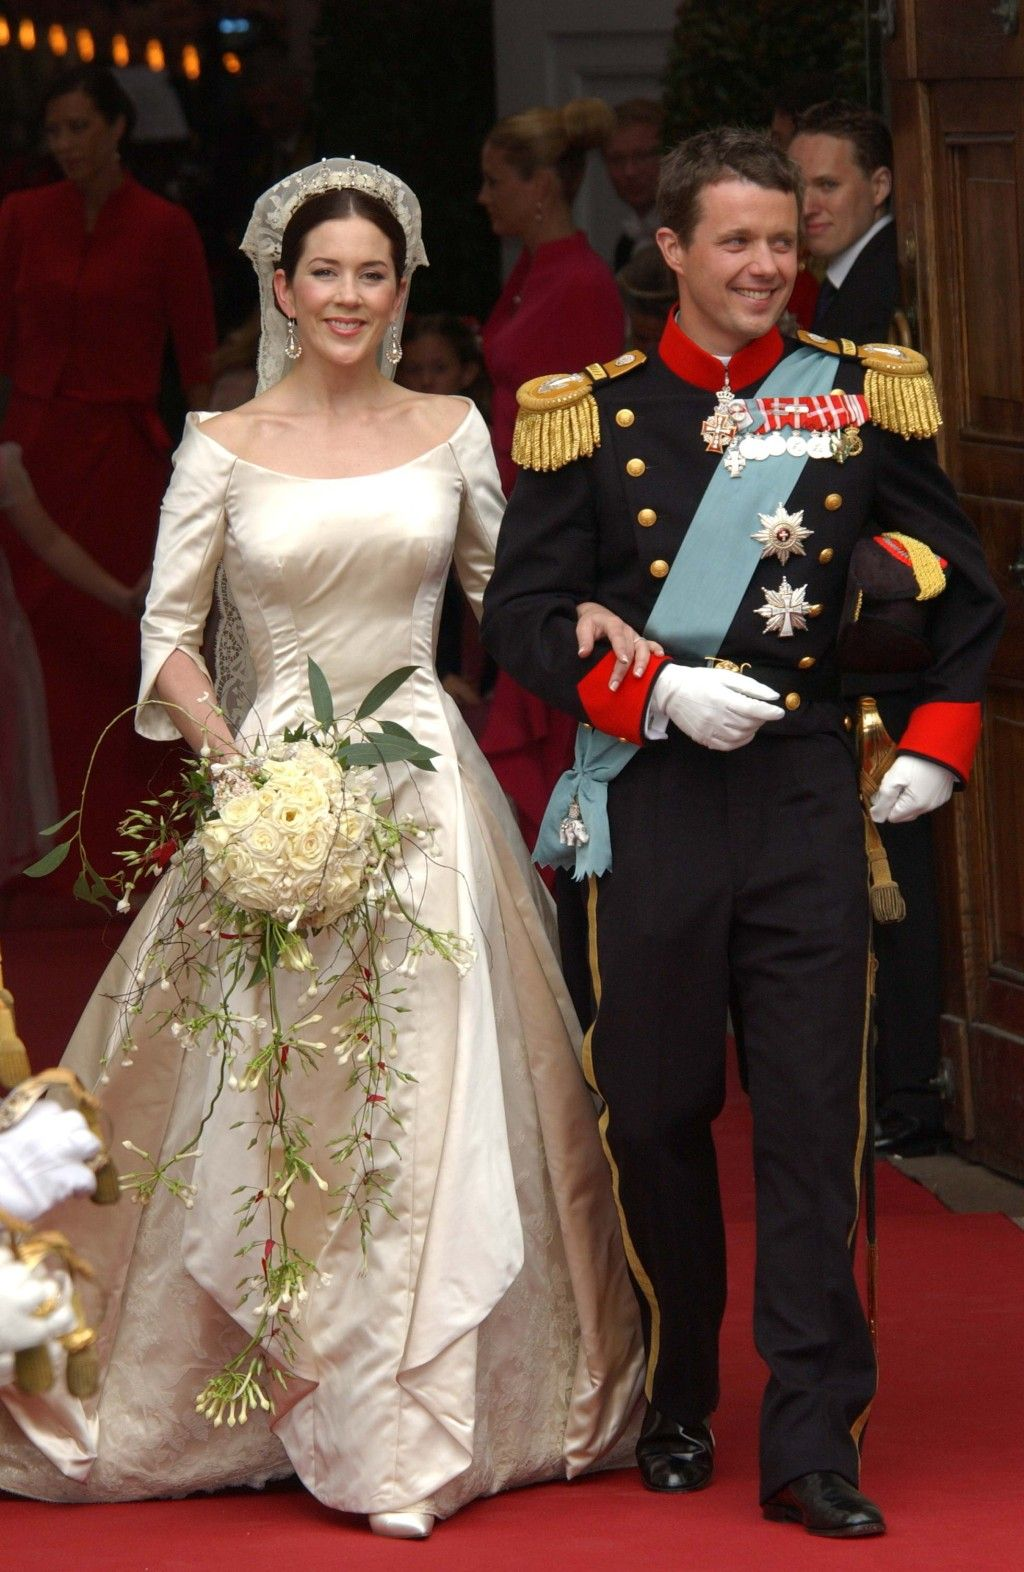 Ð?аÑ?Ñ?инки по запÑ?оÑ?Ñ? Mary Donaldson of Denmark wedding